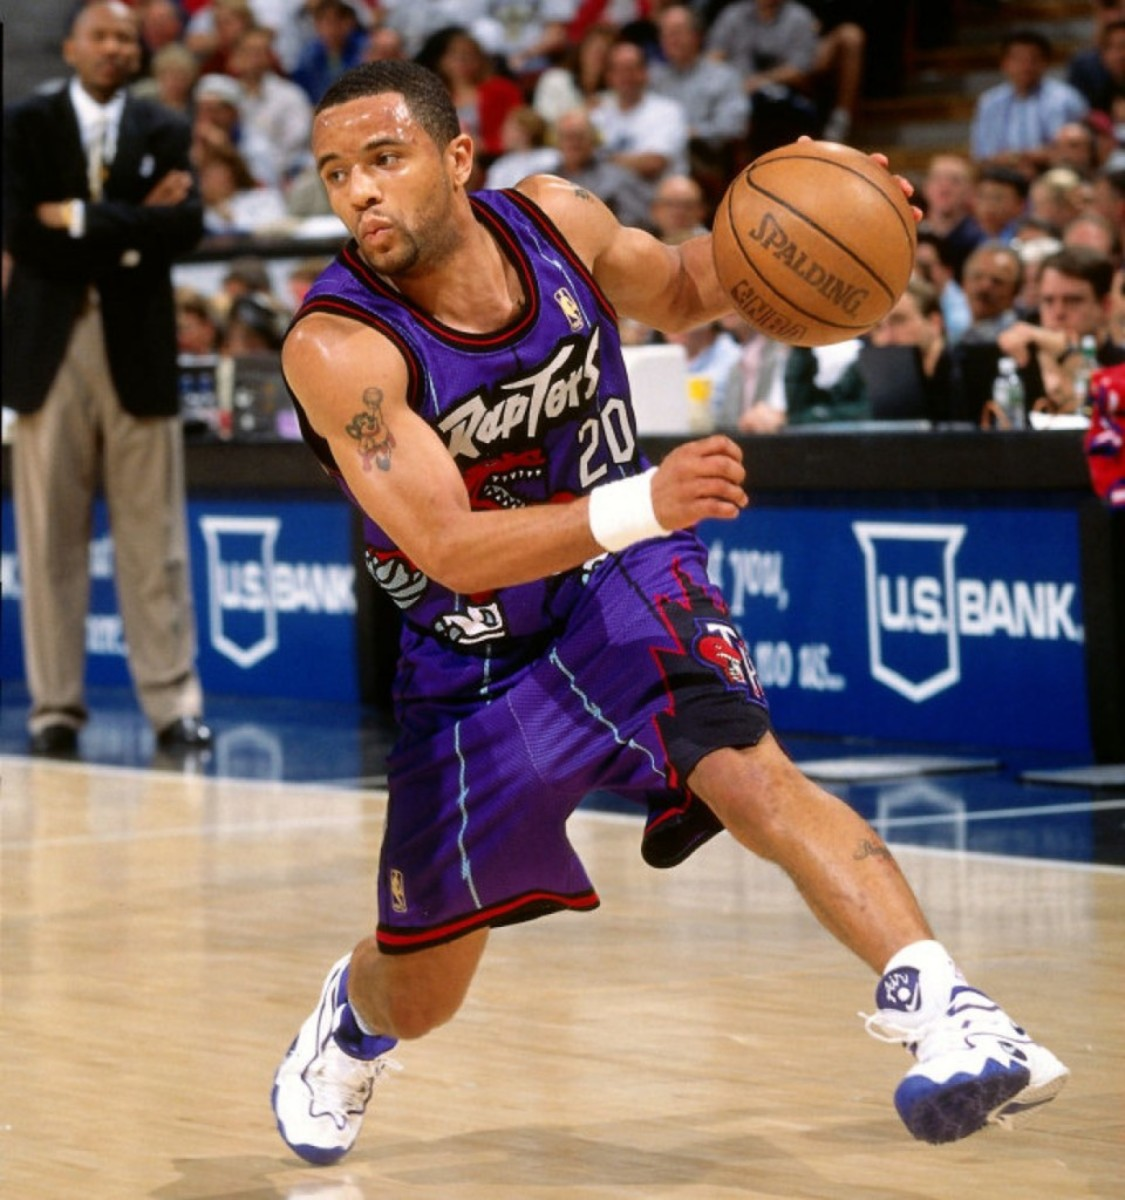 Subject: Damon Stoudamire On 2014-10-24, at 10:36 AM, Ho, Patrick wrote: another option SACRAMENTO, CA - MARCH 3: Damon Stoudamire #20 of the Toronto Raptors dribbles the ball during a game played on March 3, 1997 at Arco Arena in Sacramento, California. NOTE TO USER: User expressly acknowledges and agrees that, by downloading and or using this photograph, User is consenting to the terms and conditions of the Getty Images License Agreement. Mandatory Copyright Notice: Copyright 1997 NBAE (Photo by Rocky Widner/NBAE via Getty Images) Patrick Ho Deputy Sports Editor Toronto Star  stoudamire.JPG